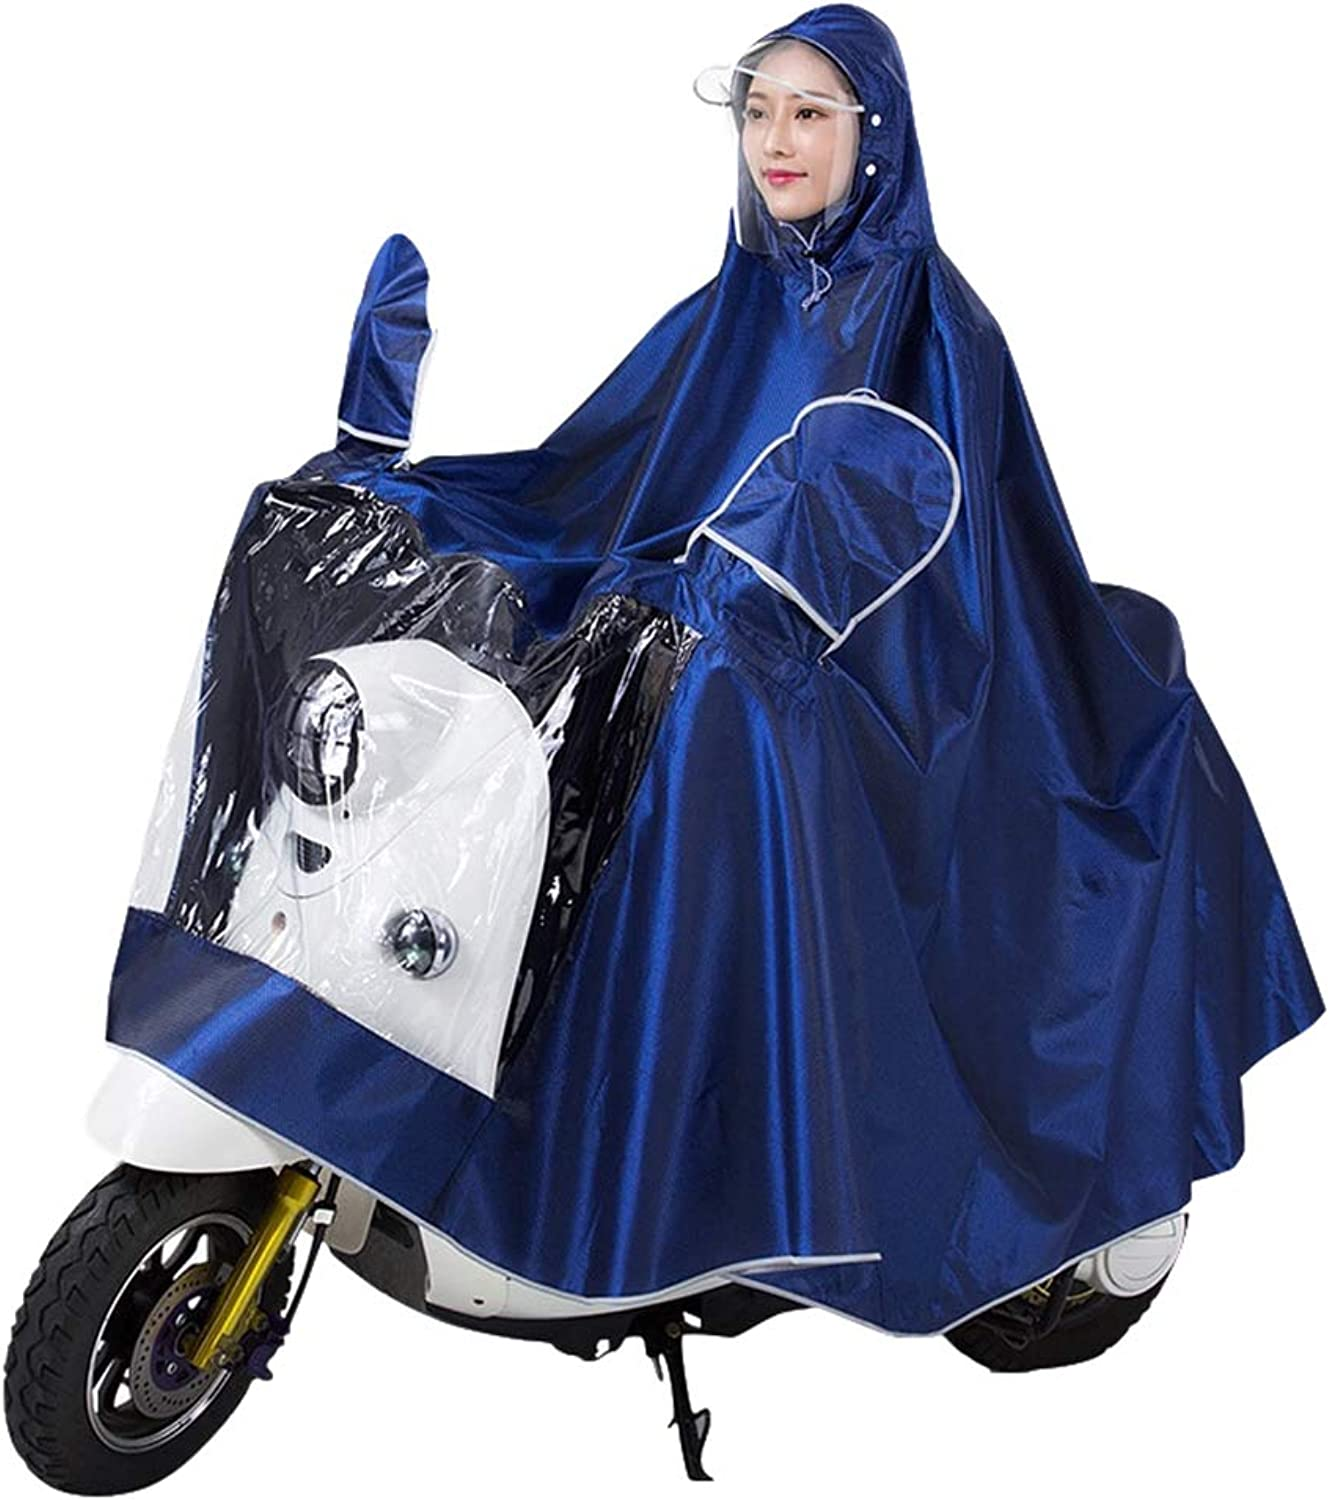 Cycling Raincoat for Adults, Reusable Poncho to Increase Men's and Women's Waterproof Jacket